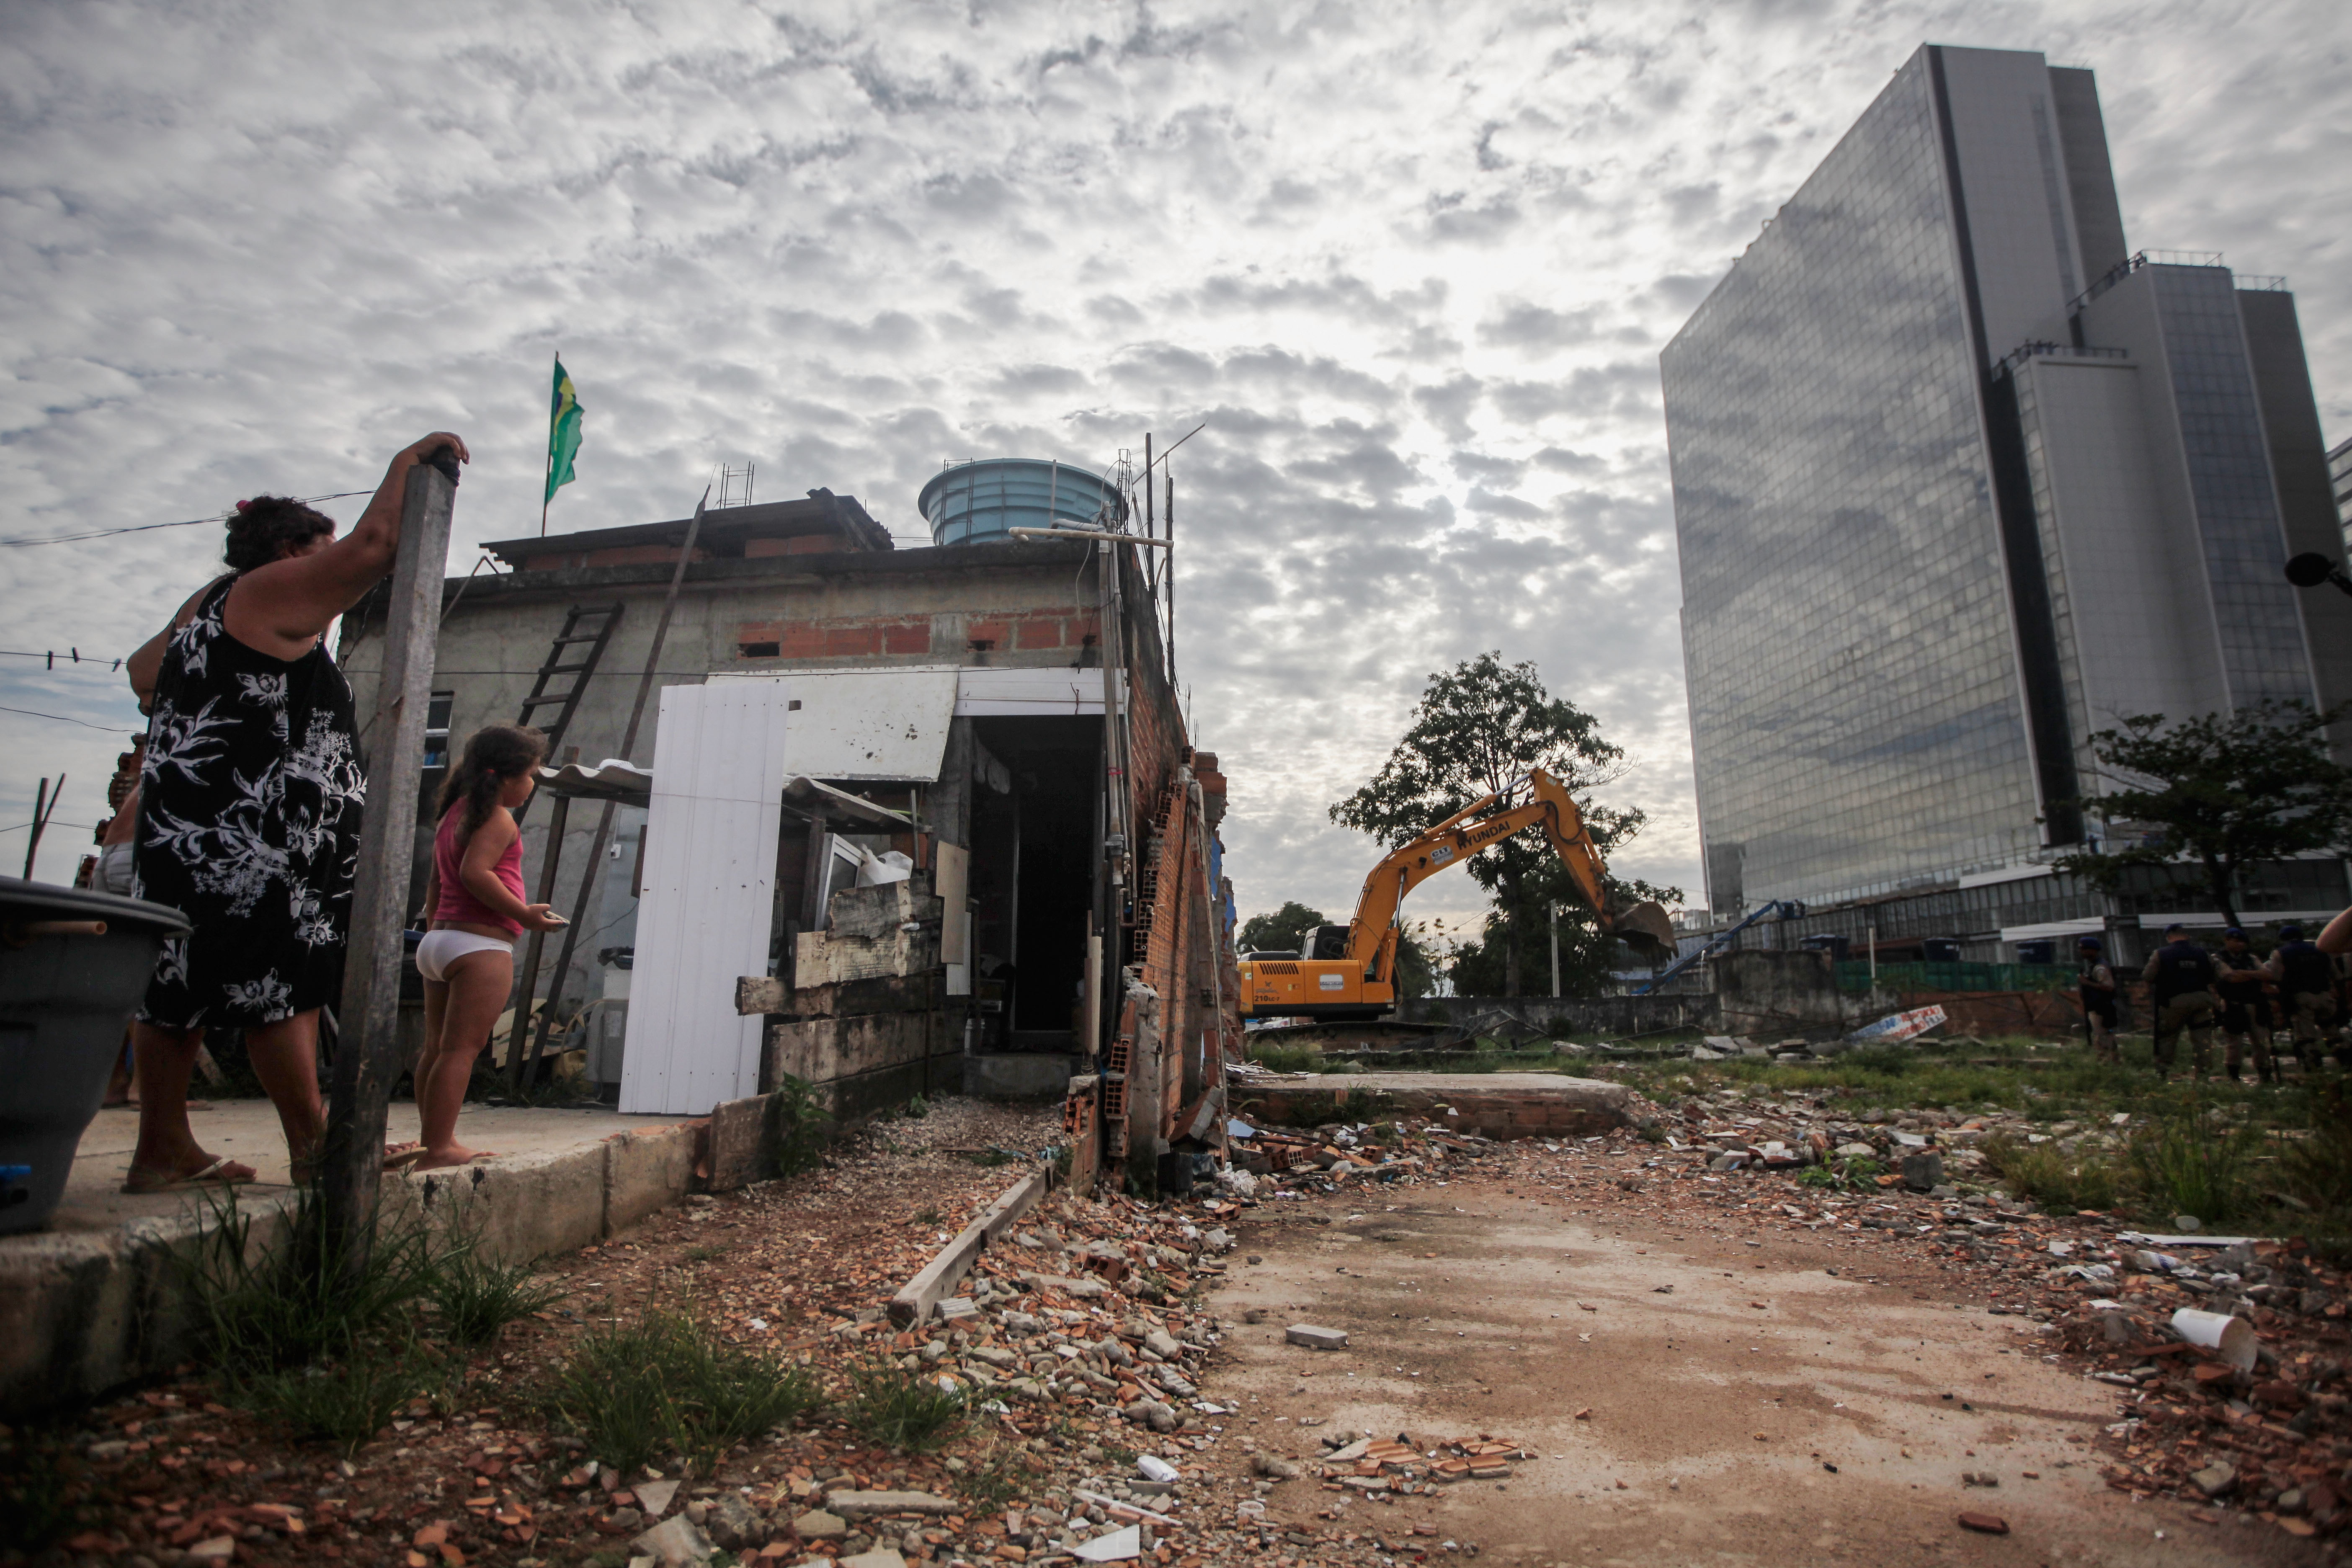 RIO DE JANEIRO, BRAZIL - FEBRUARY 24: Members of the Lopes family watch from their remaining home during the demolition of the neighboring residents association building in the mostly demolished Vila Autodromo favela community, with new Olympic Park construction standing (R), on February 24, 2016 in Rio de Janeiro, Brazil. Most residents of the favela community have moved out and had their properties demolished after receiving compensation for their homes which are located directly adjacent to the Olympic Park under construction for the Rio 2016 Olympic Games. A small fraction of remaining families from an original 700 or so in Vila Autodromo are resisting the controversial evictions and remain in the community. The favela sprang from an old fishing community and was considered one of the city's safest. Removals and demolitions have occurred in other Rio communities with tangential links to the games. (Photo by Mario Tama/Getty Images)